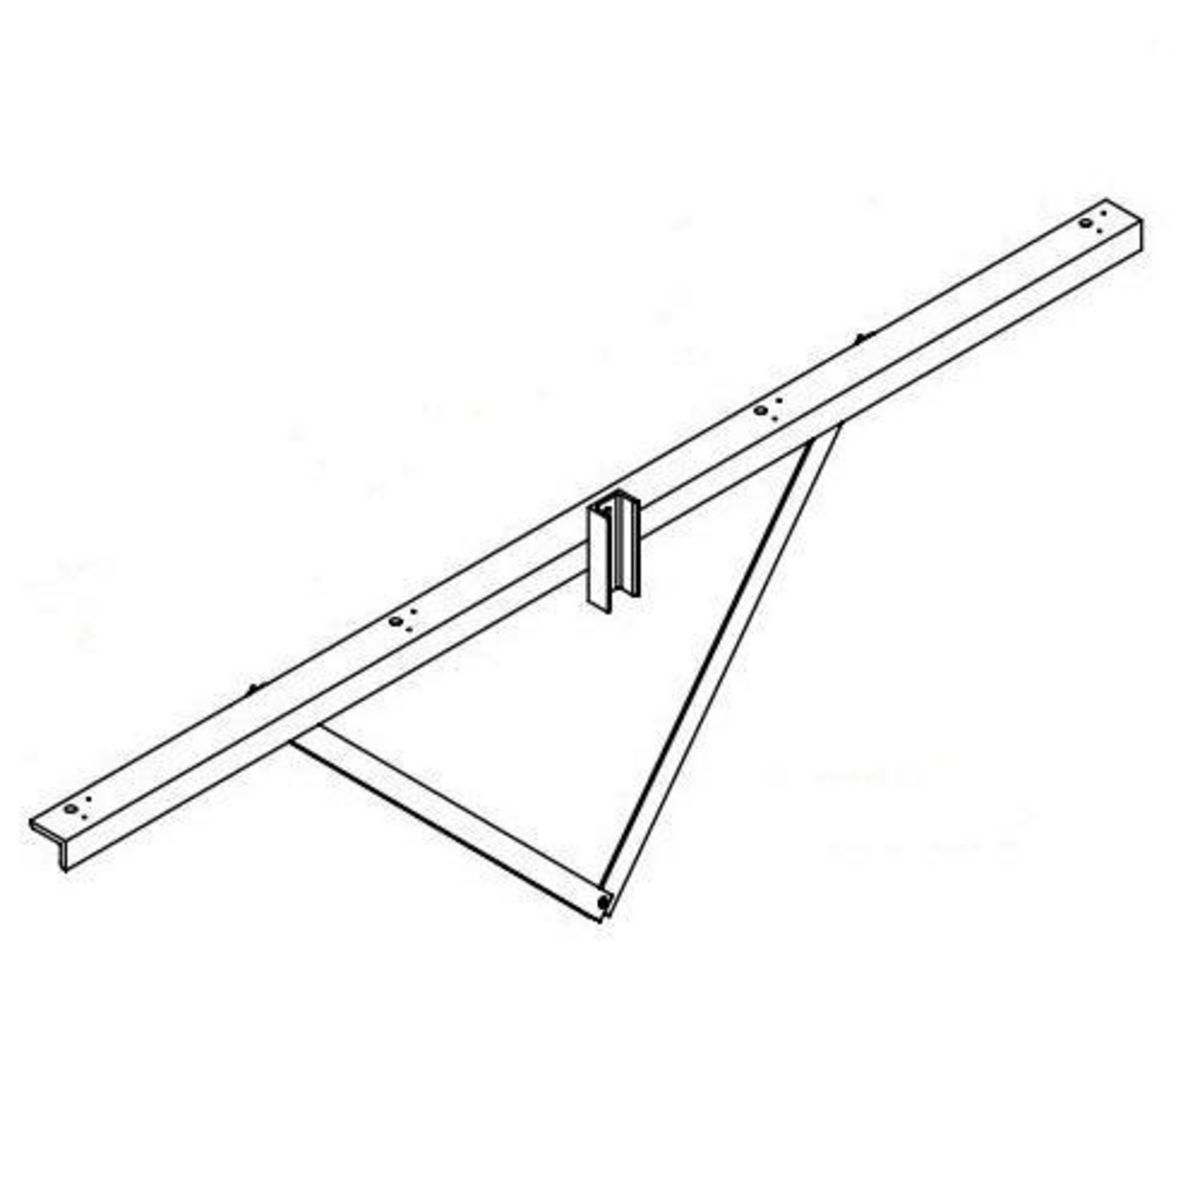 Hubbell Sportslighter Solutions,TCA-W4,BRKT X-ARM WOOD POLE MNTG 4 FIXT